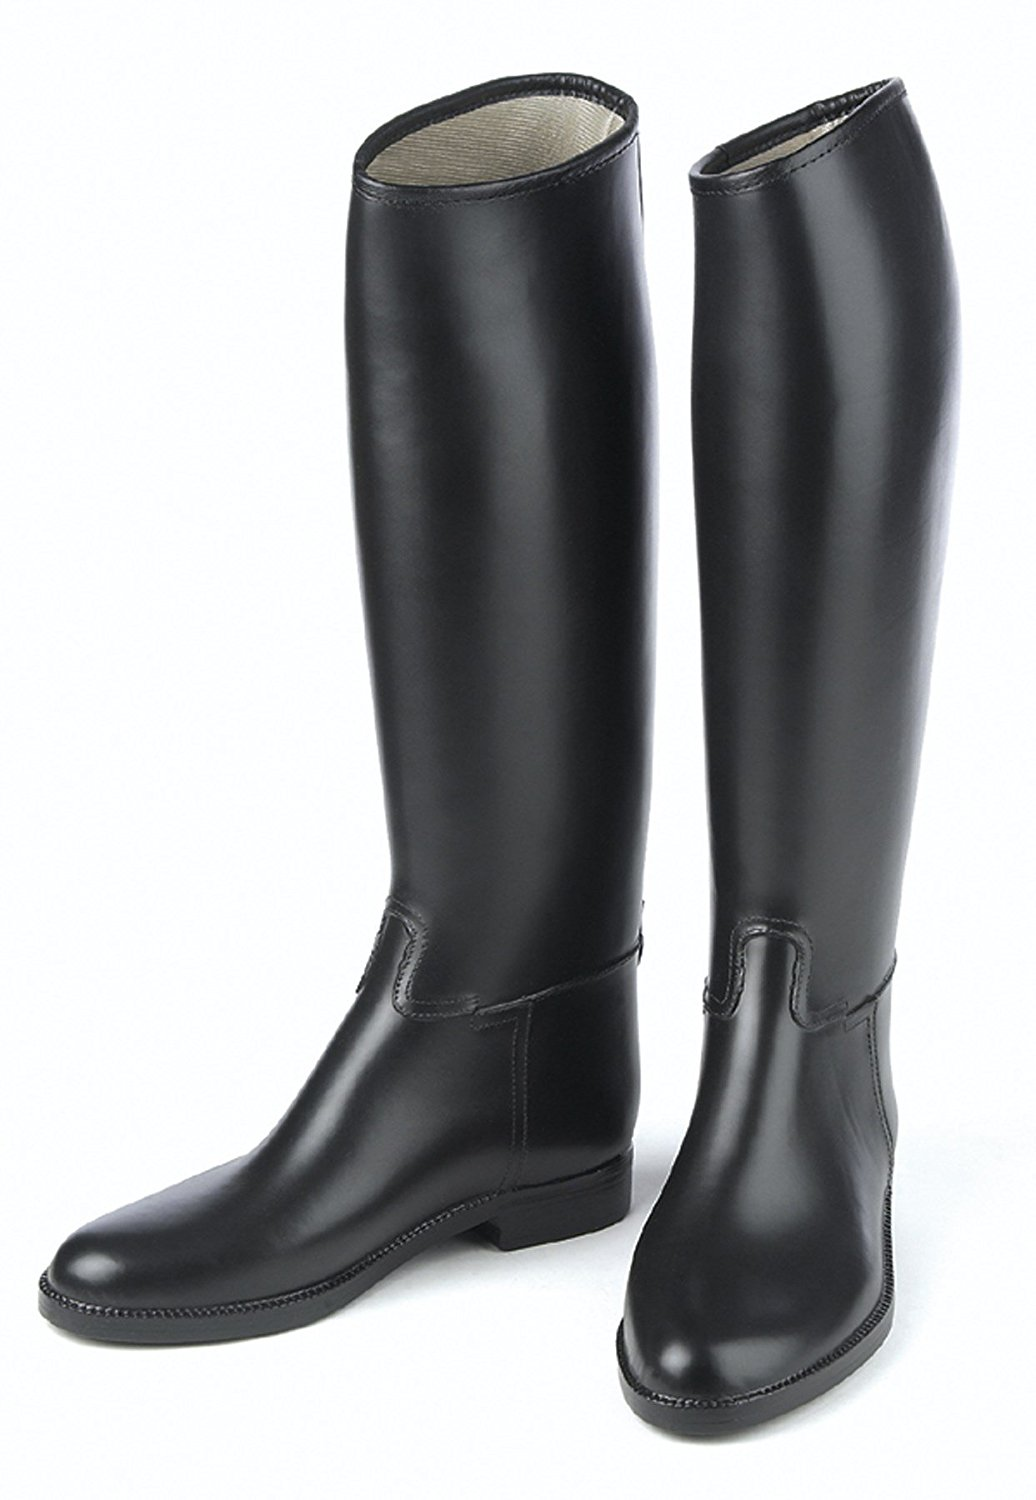 riding boots amazon.com : ovation derby/cottage - menu0027s lined rubber riding boot :  equestrian gfomtkm